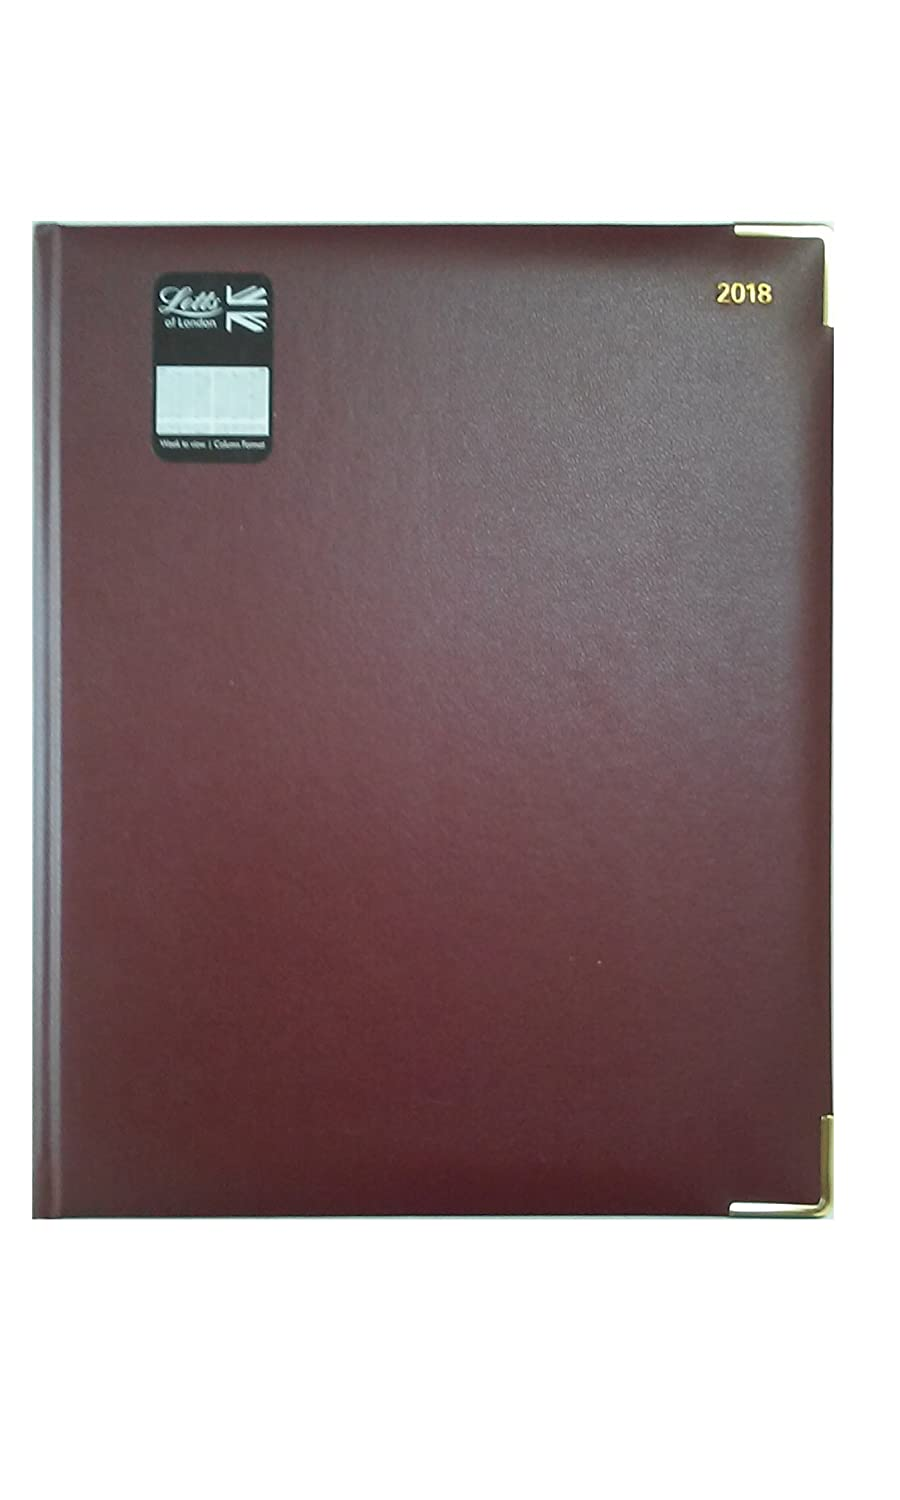 Letts of London 32Y-2018 For 2018 Classic Quarto Week to View Diary Burgundy Cover with Gold Colored Corners